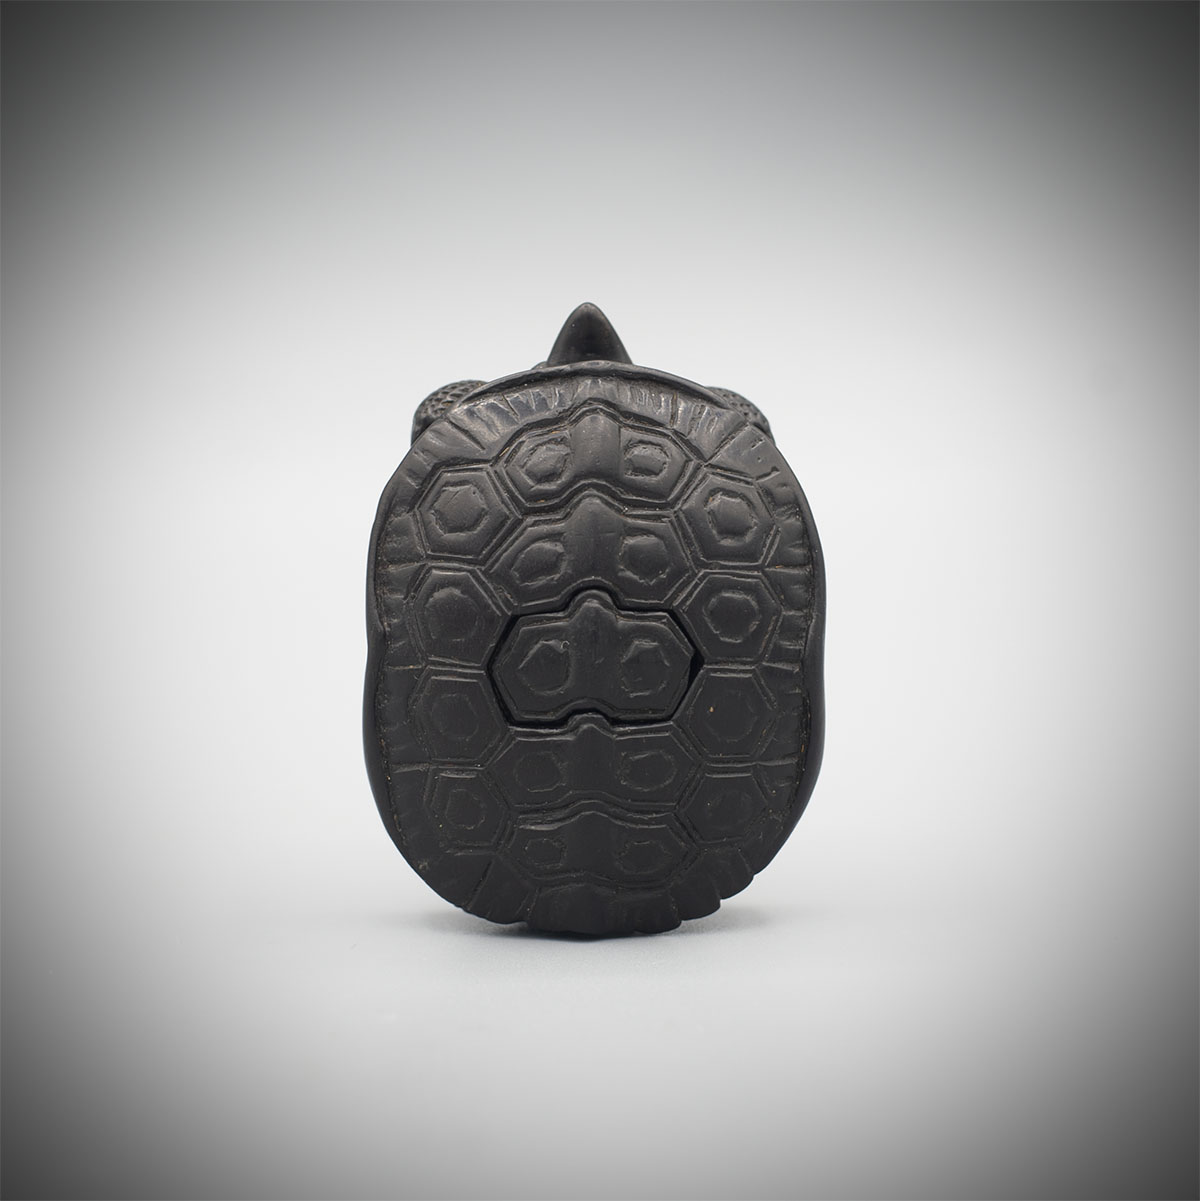 Ebony Netsuke of a Turtle, Kiyoho, MR3229_v1